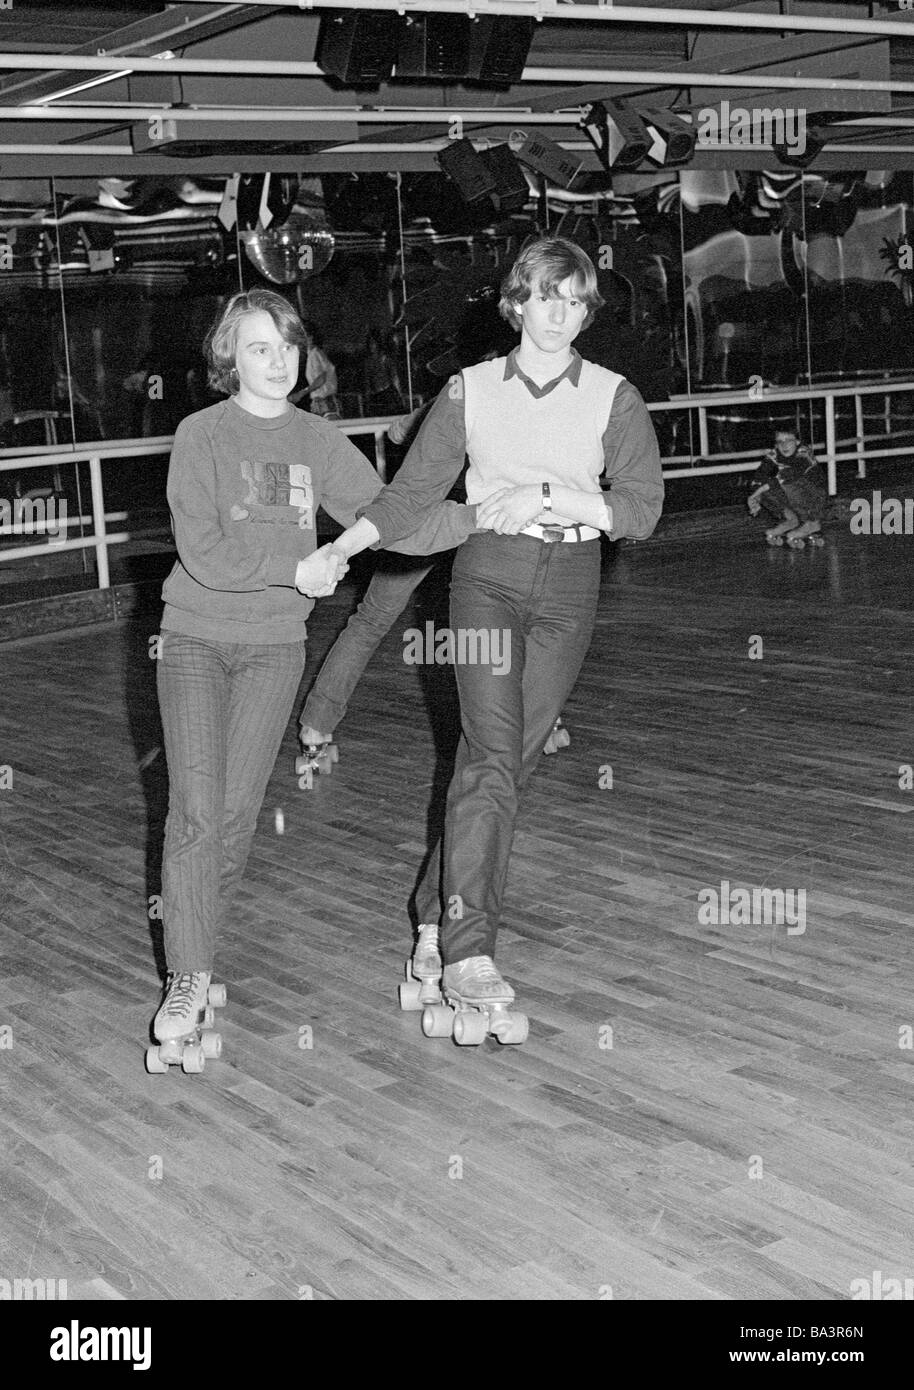 Eighties, black and white photo, people, young couple on rollerblades in a sports hall, trousers, pulli, aged 15 - Stock Image